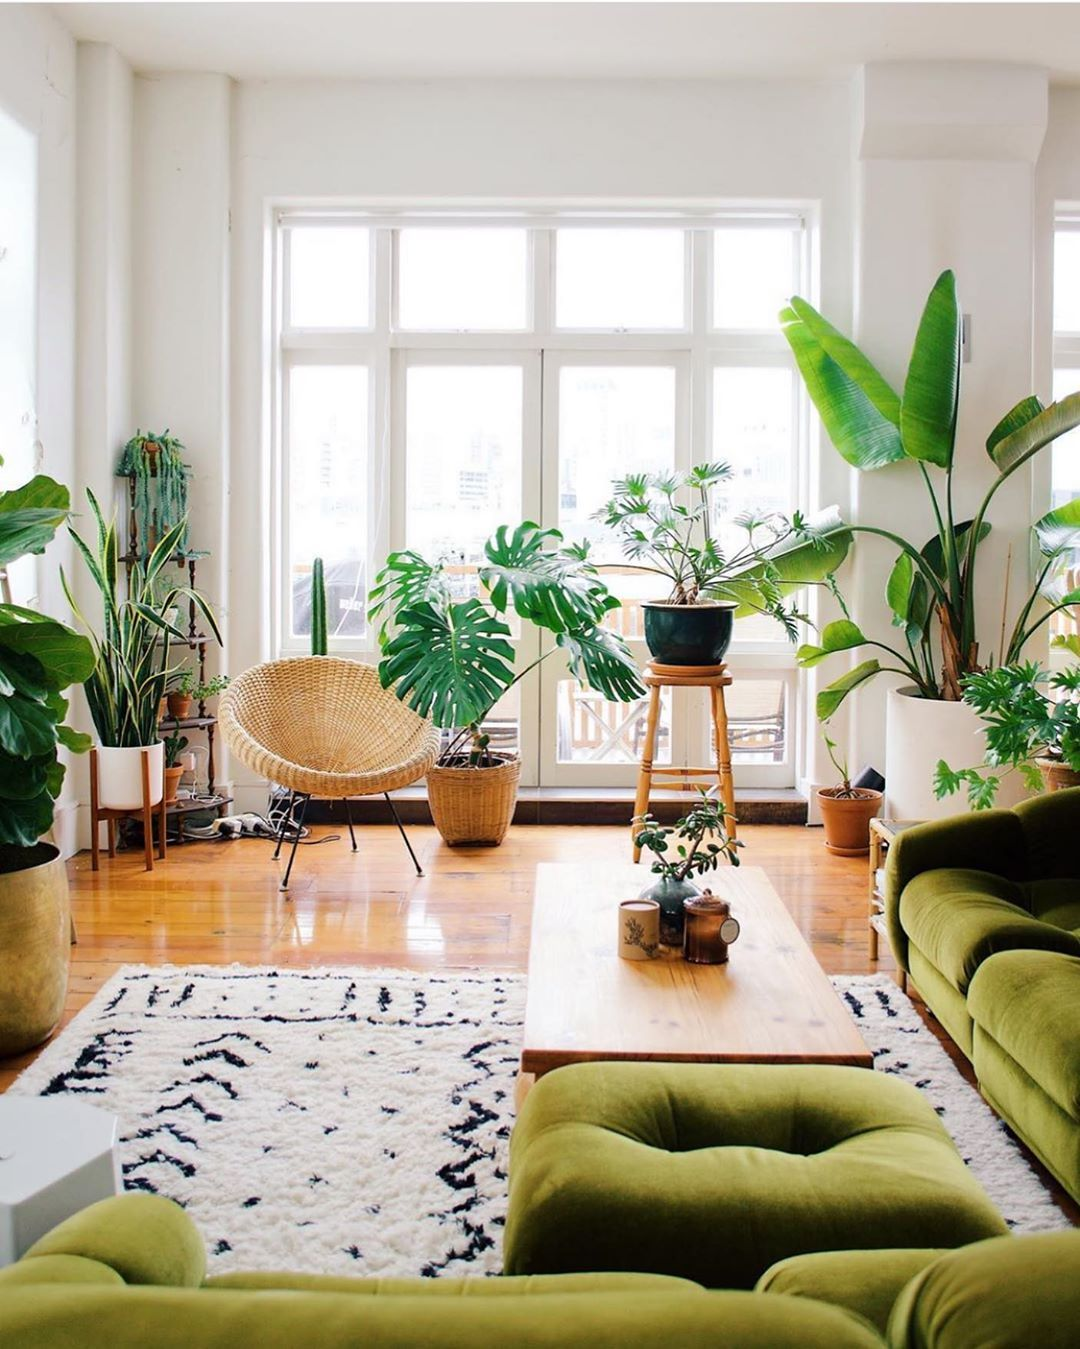 Urban Jungle Bloggers On Instagram Living Room Goals All The Way From New Zealand Green Sofa Living Room Urban Living Room Big Windows Living Room Jungle living room ideas